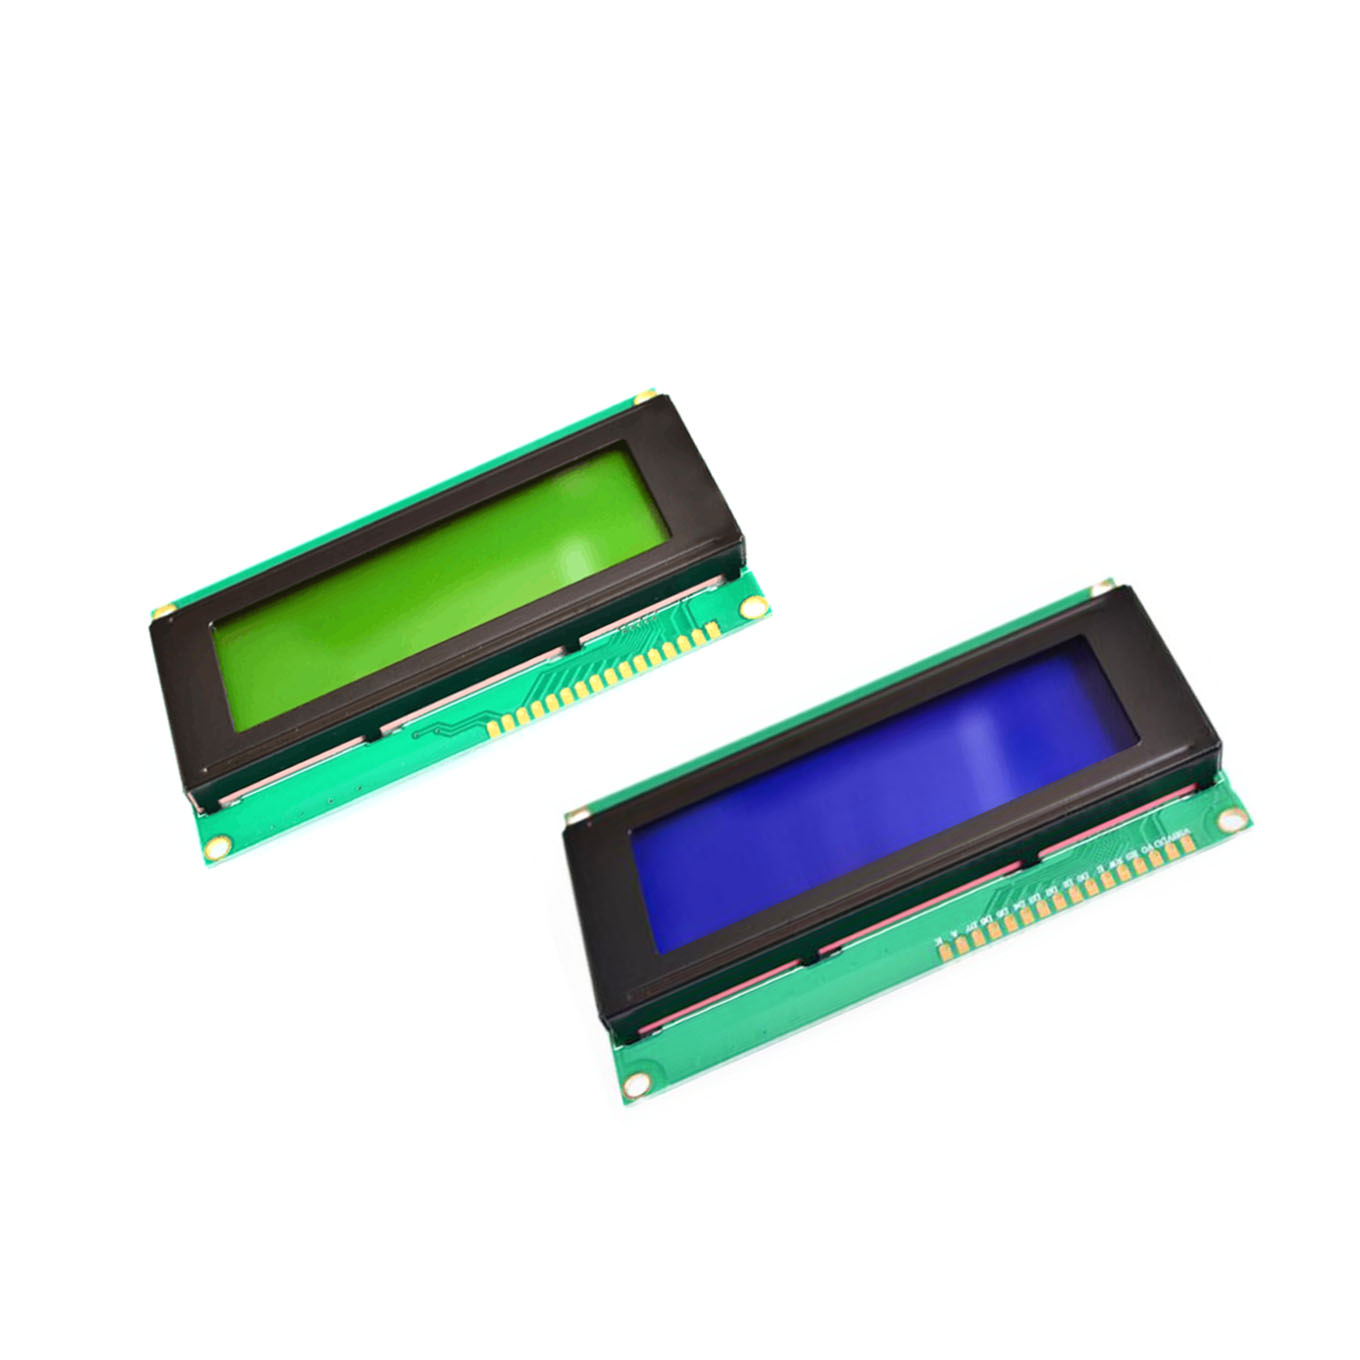 Blue Green LCD 2004 20x4 Character LCD Display Module HD44780 Controller Blue Screen Backlight For